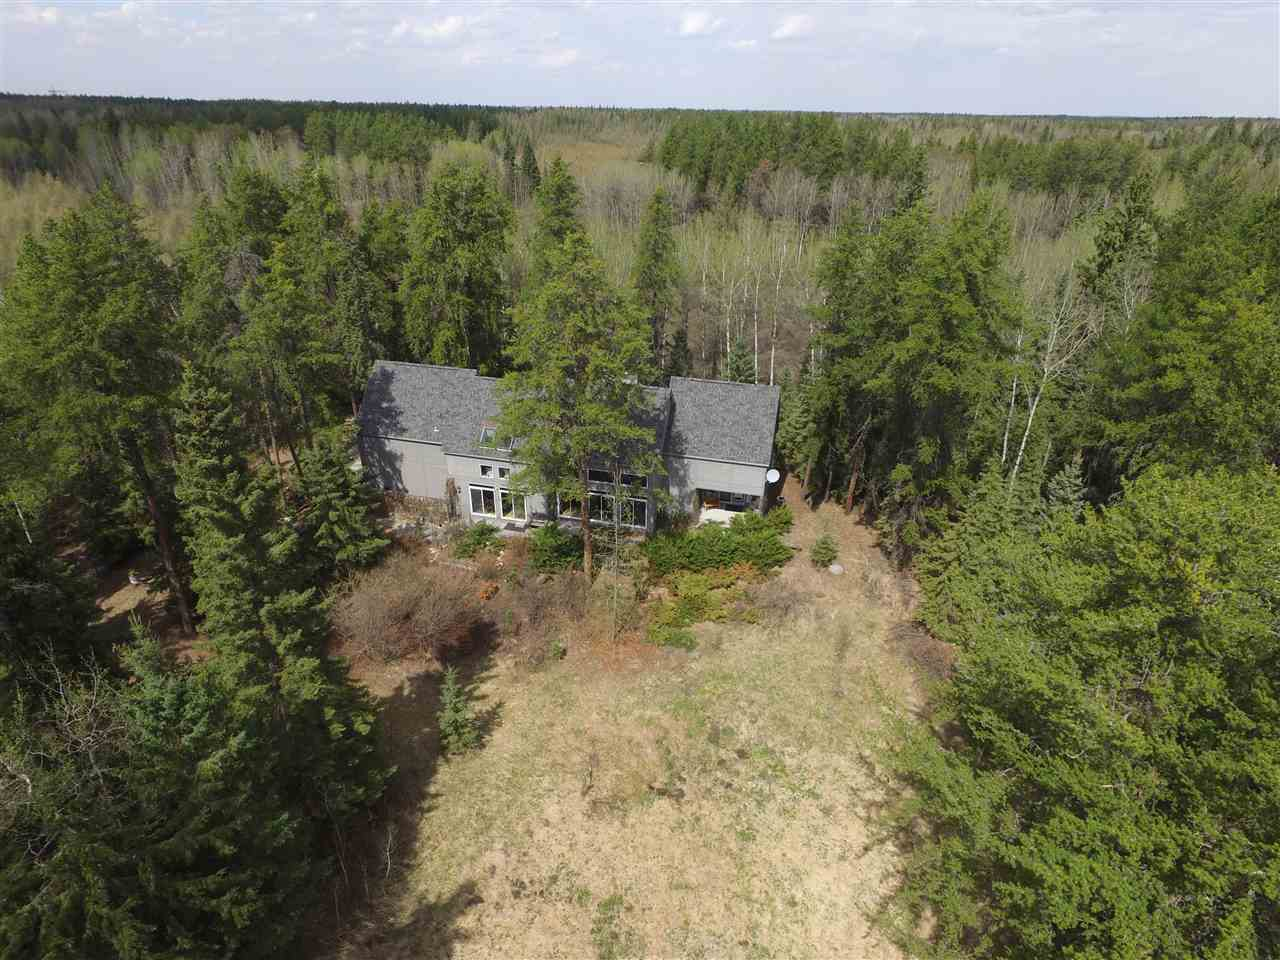 Photo 1: 3 26204 TWP RD 512 Road: Rural Parkland County House for sale : MLS® # E4061055